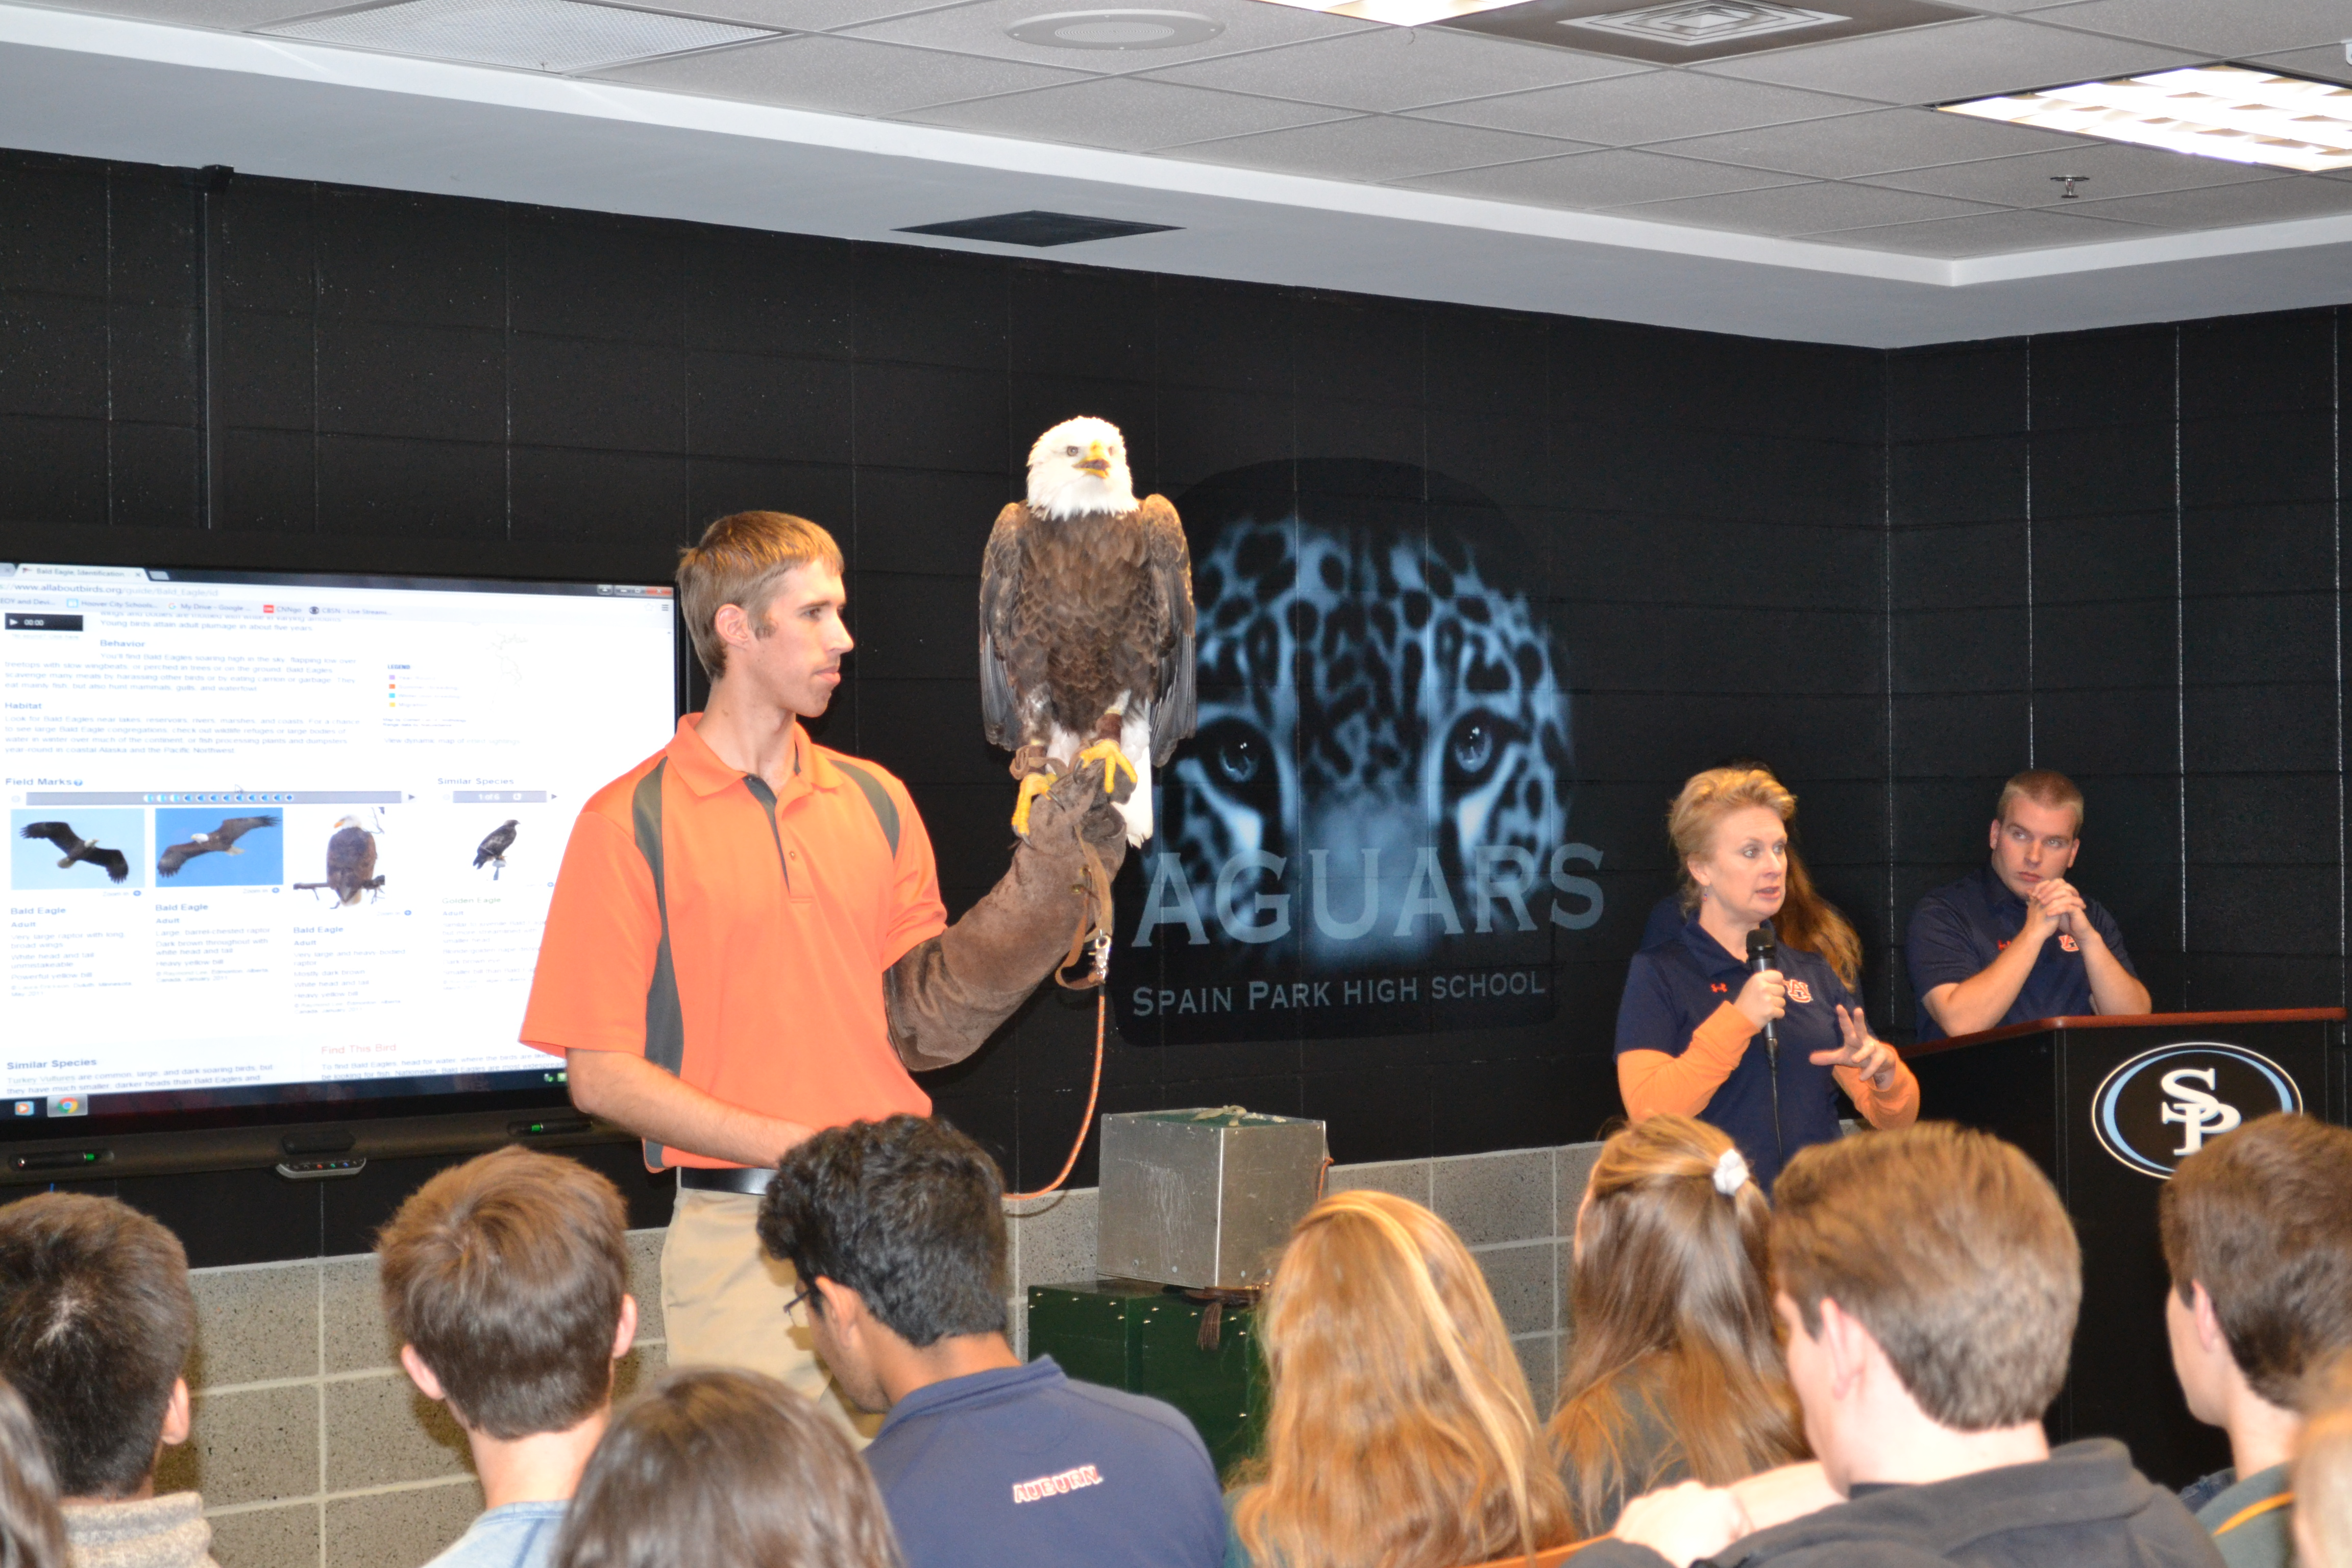 Southeastern Raptor Center Faculty displays and present information on a bald eagle named Spirit.